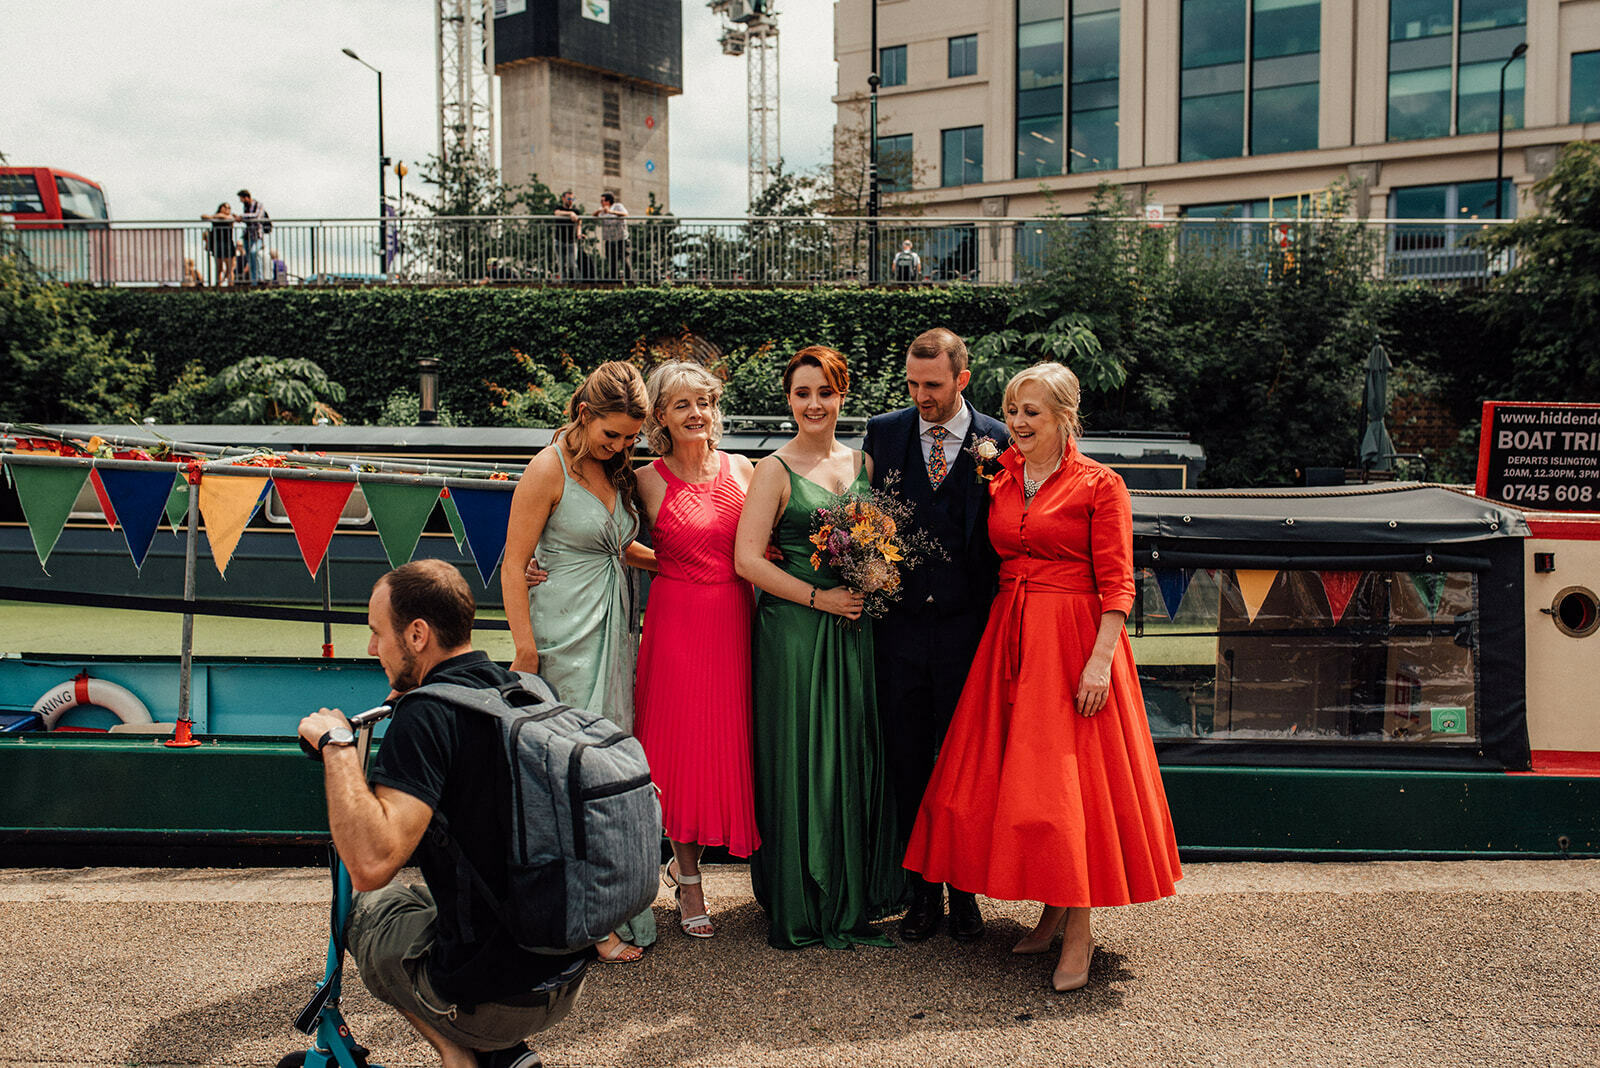 Wedding party gets photobombed by a man on a scooter as they pose for a portrait in front of canal boat in Kings Cross